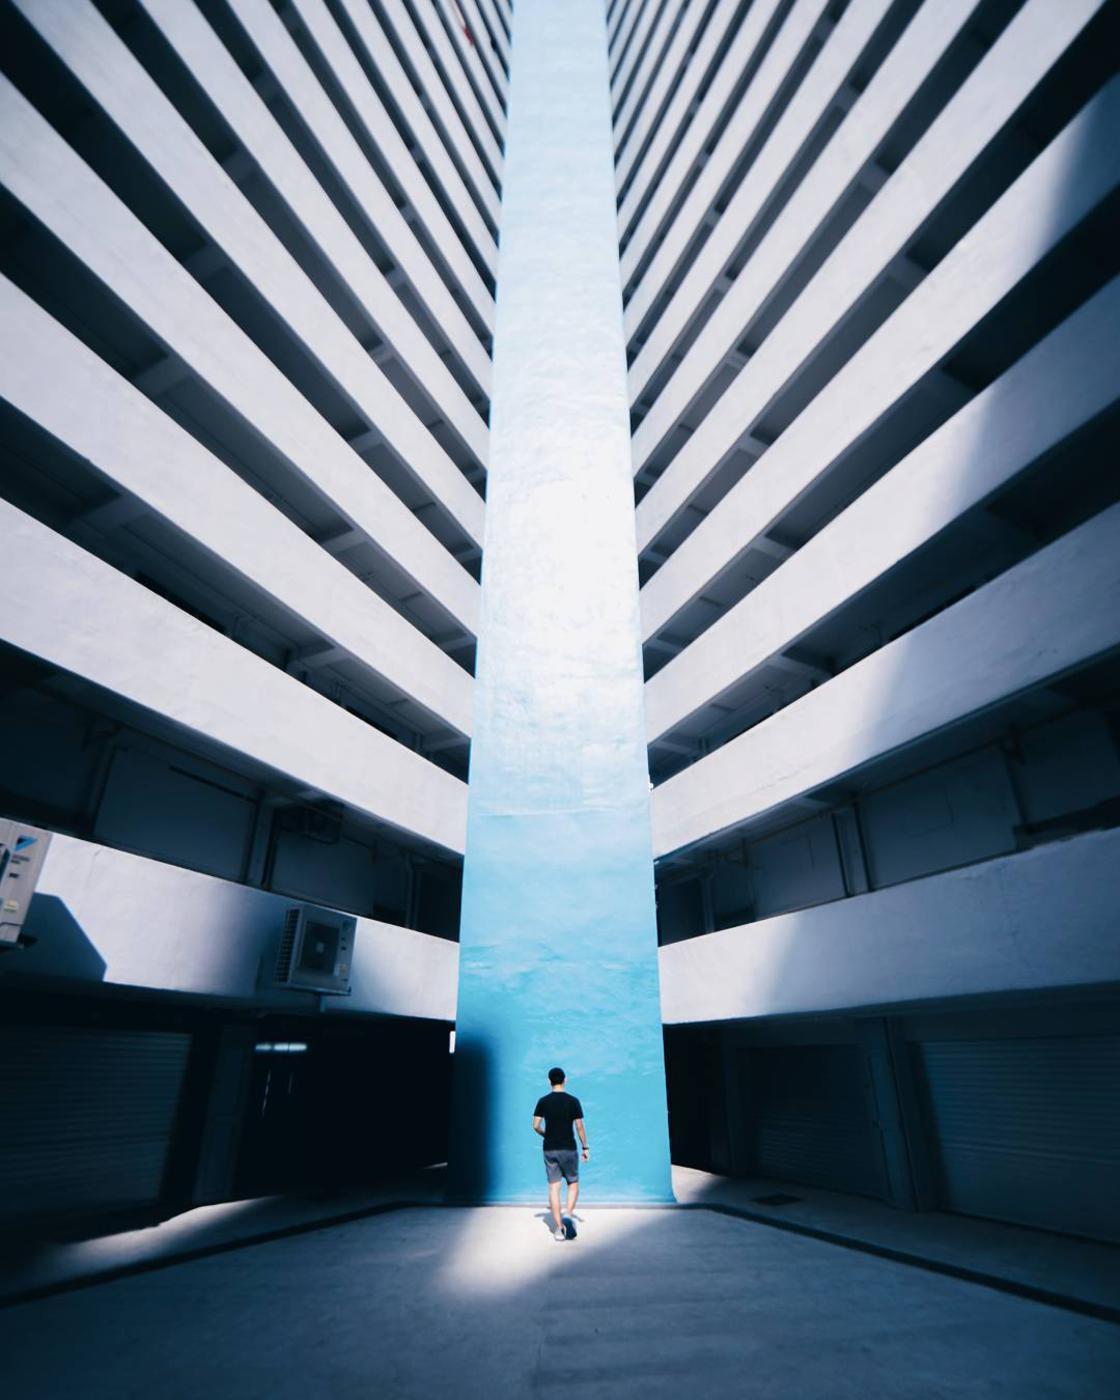 Vertigo – The beautiful photographs of Demas Rusli